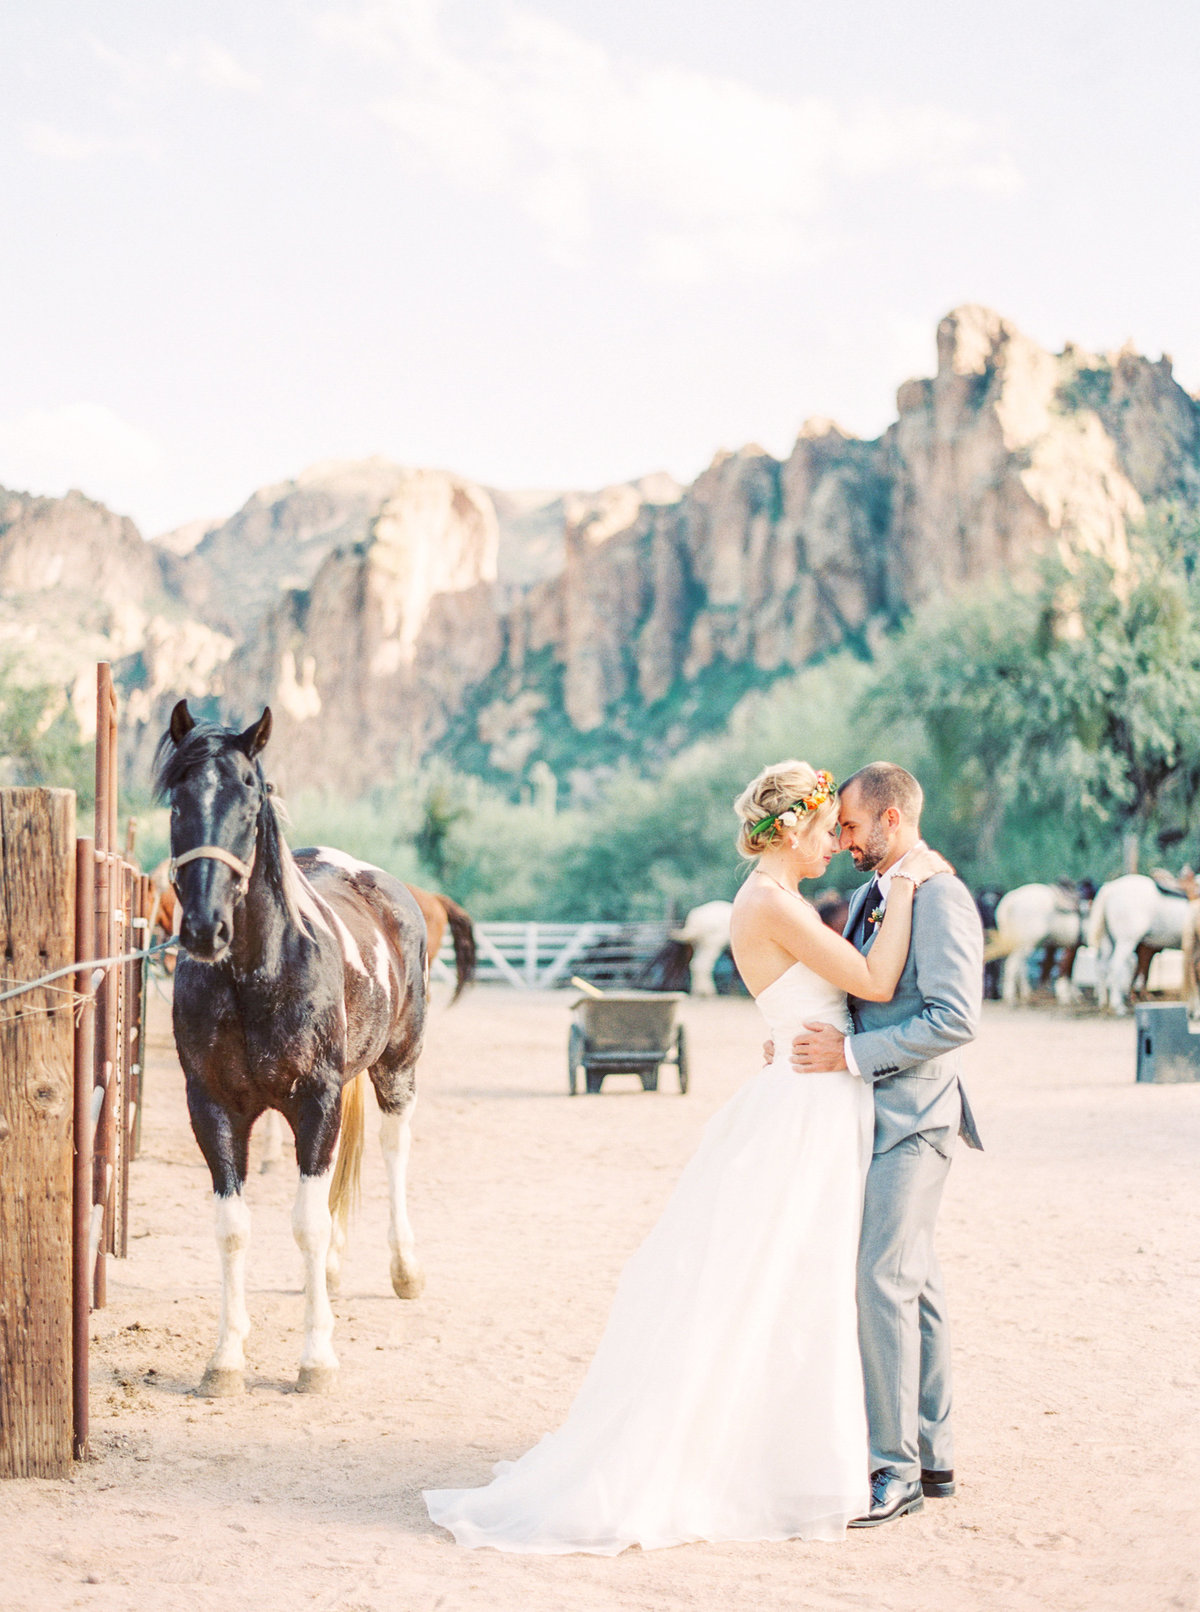 Imoni-Events-Melissa-Jill-Saguaro-Lake-Ranch-043